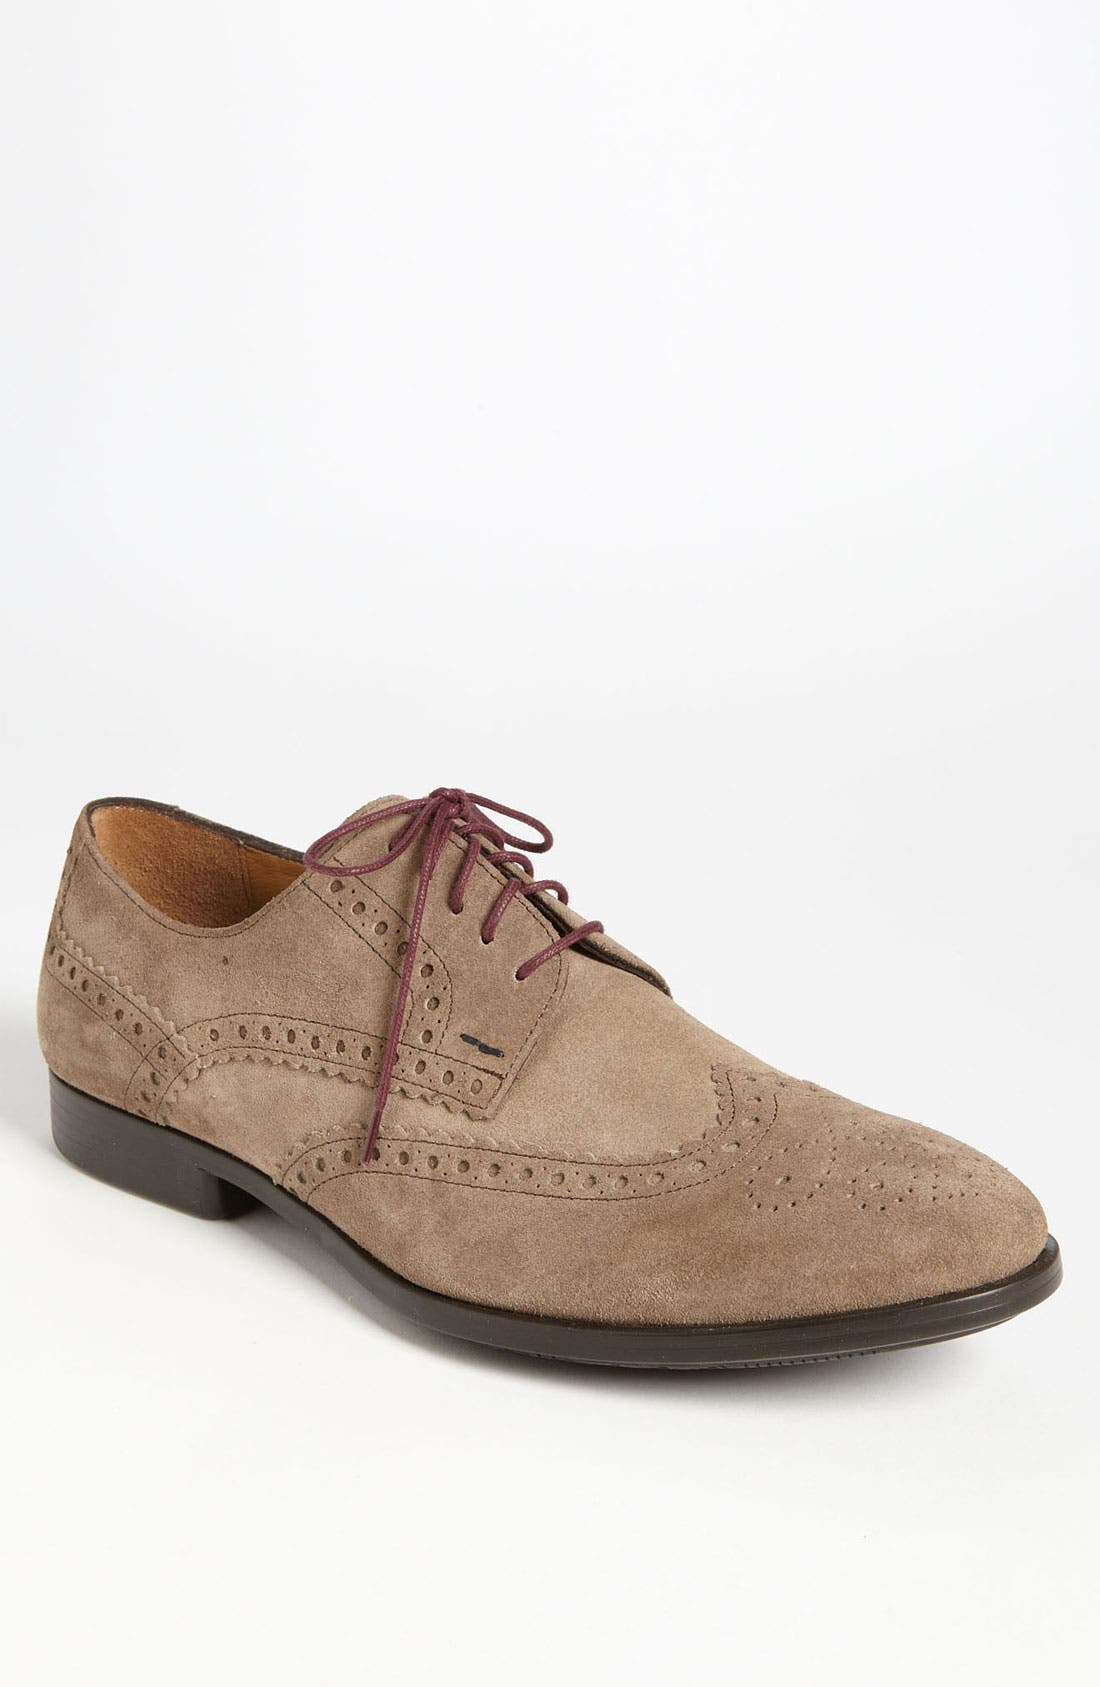 Alternate Image 1 Selected - Paul Smith 'Panorama' Suede Wingtip